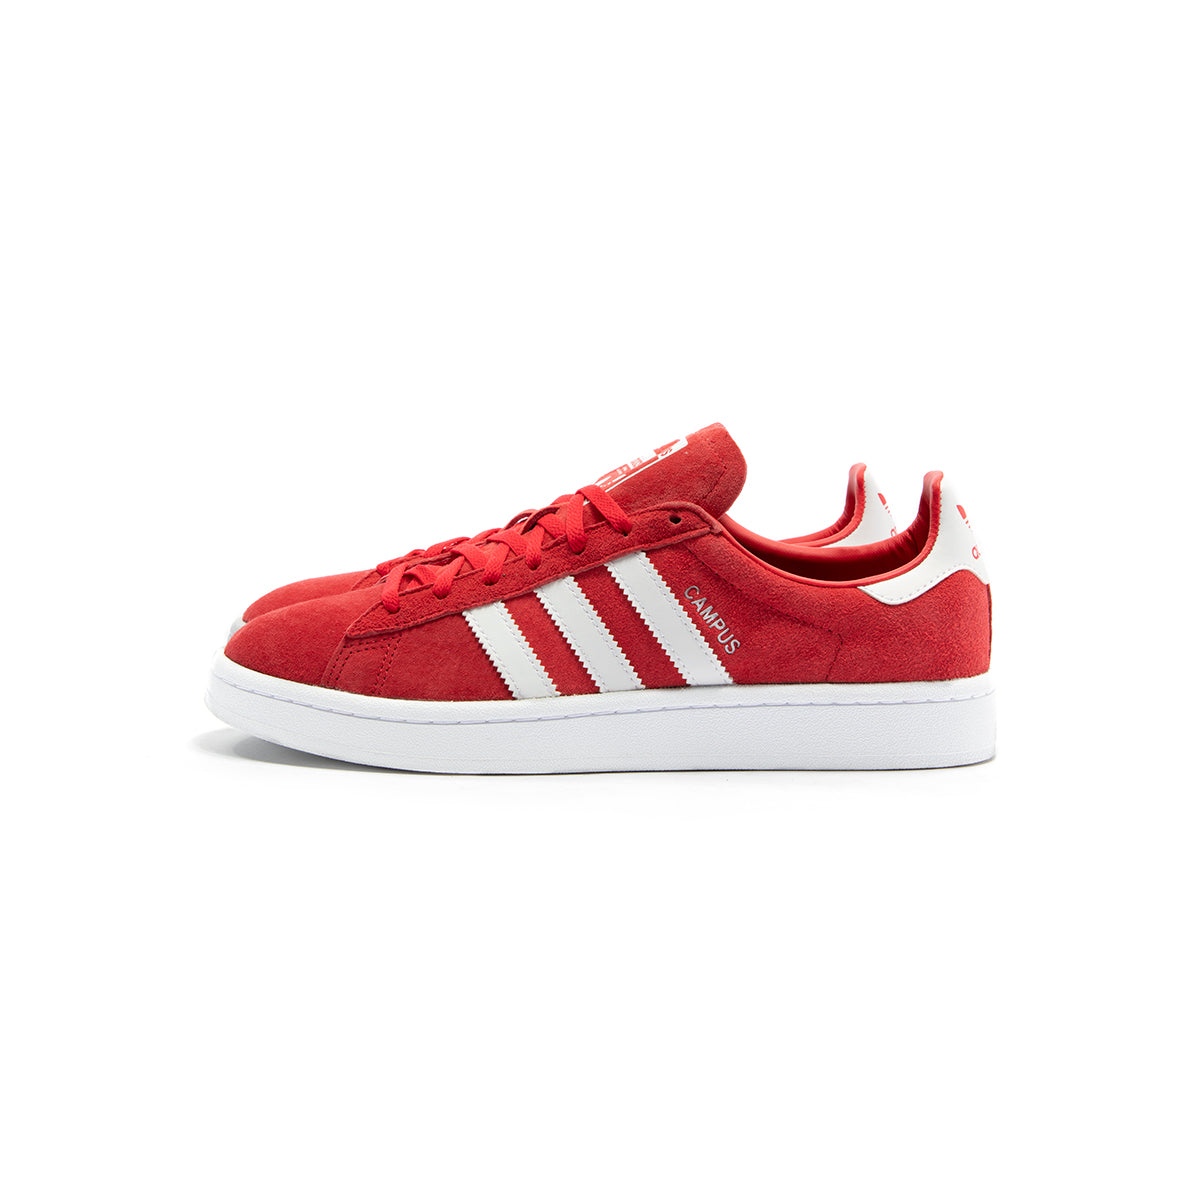 ADIDAS WOMEN'S CAMPUS (RAY RED/WHITE